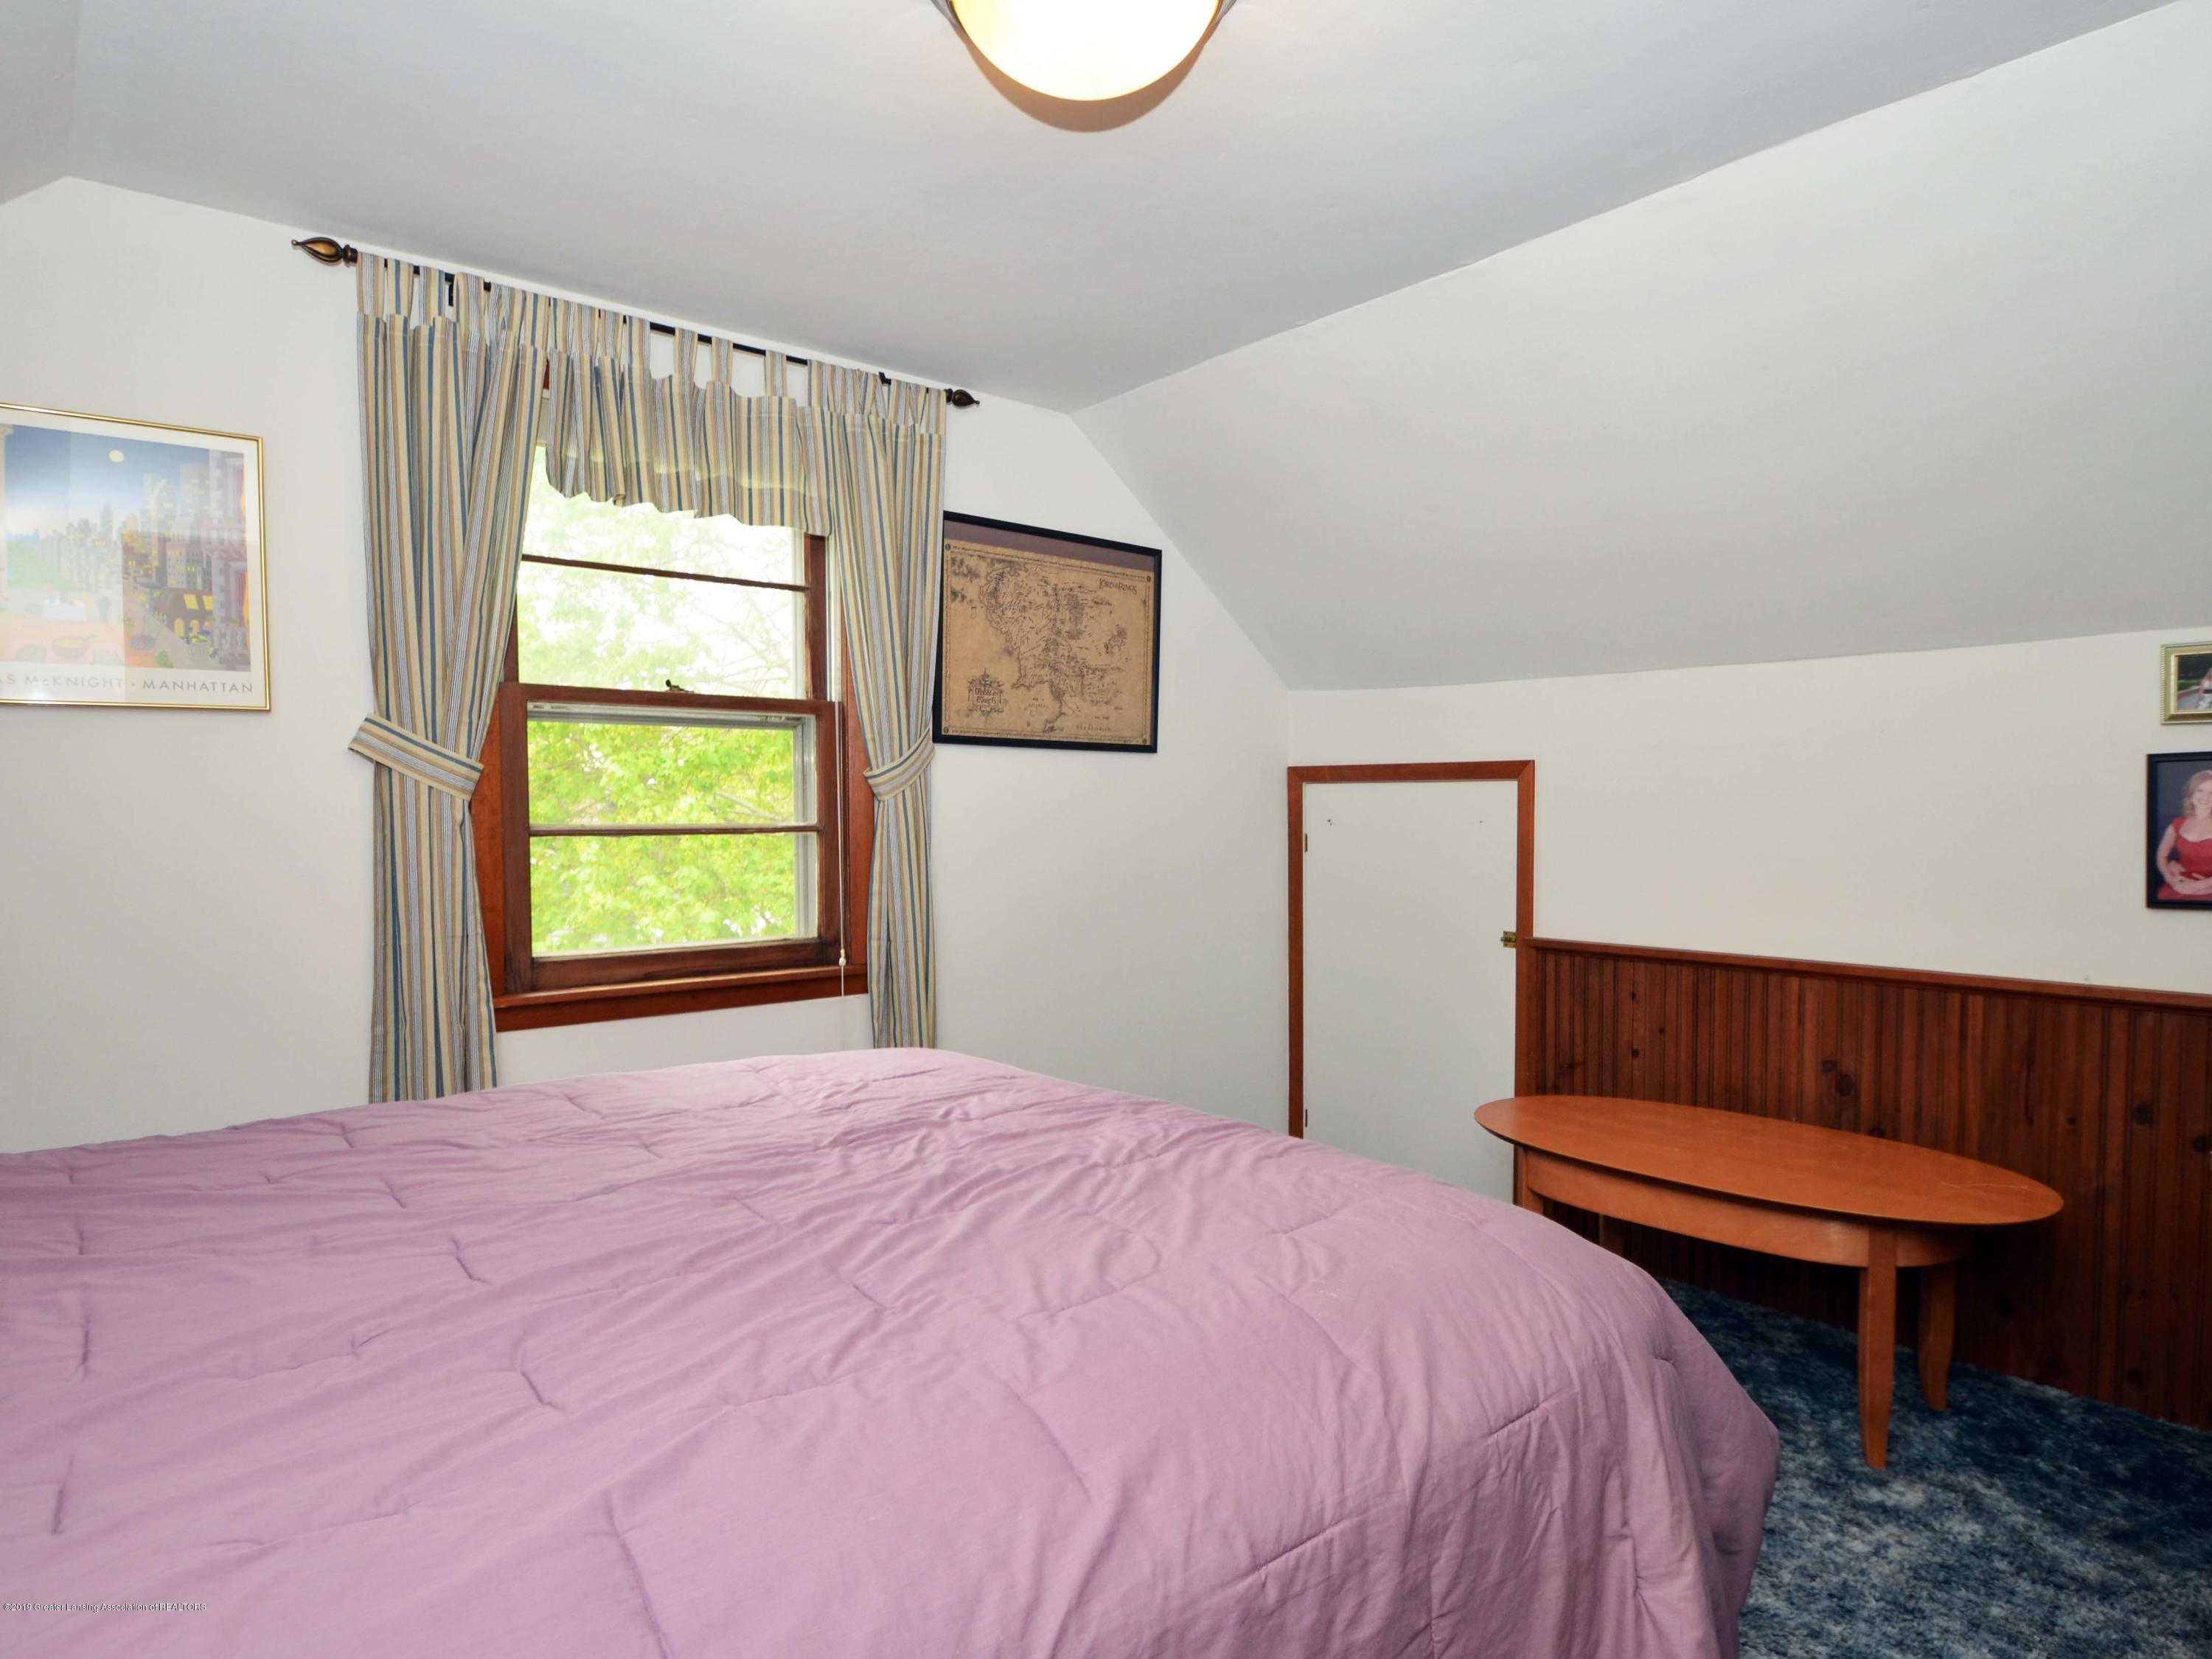 4962 Wilcox Rd - 18Upper Level Bedroom1 - 18